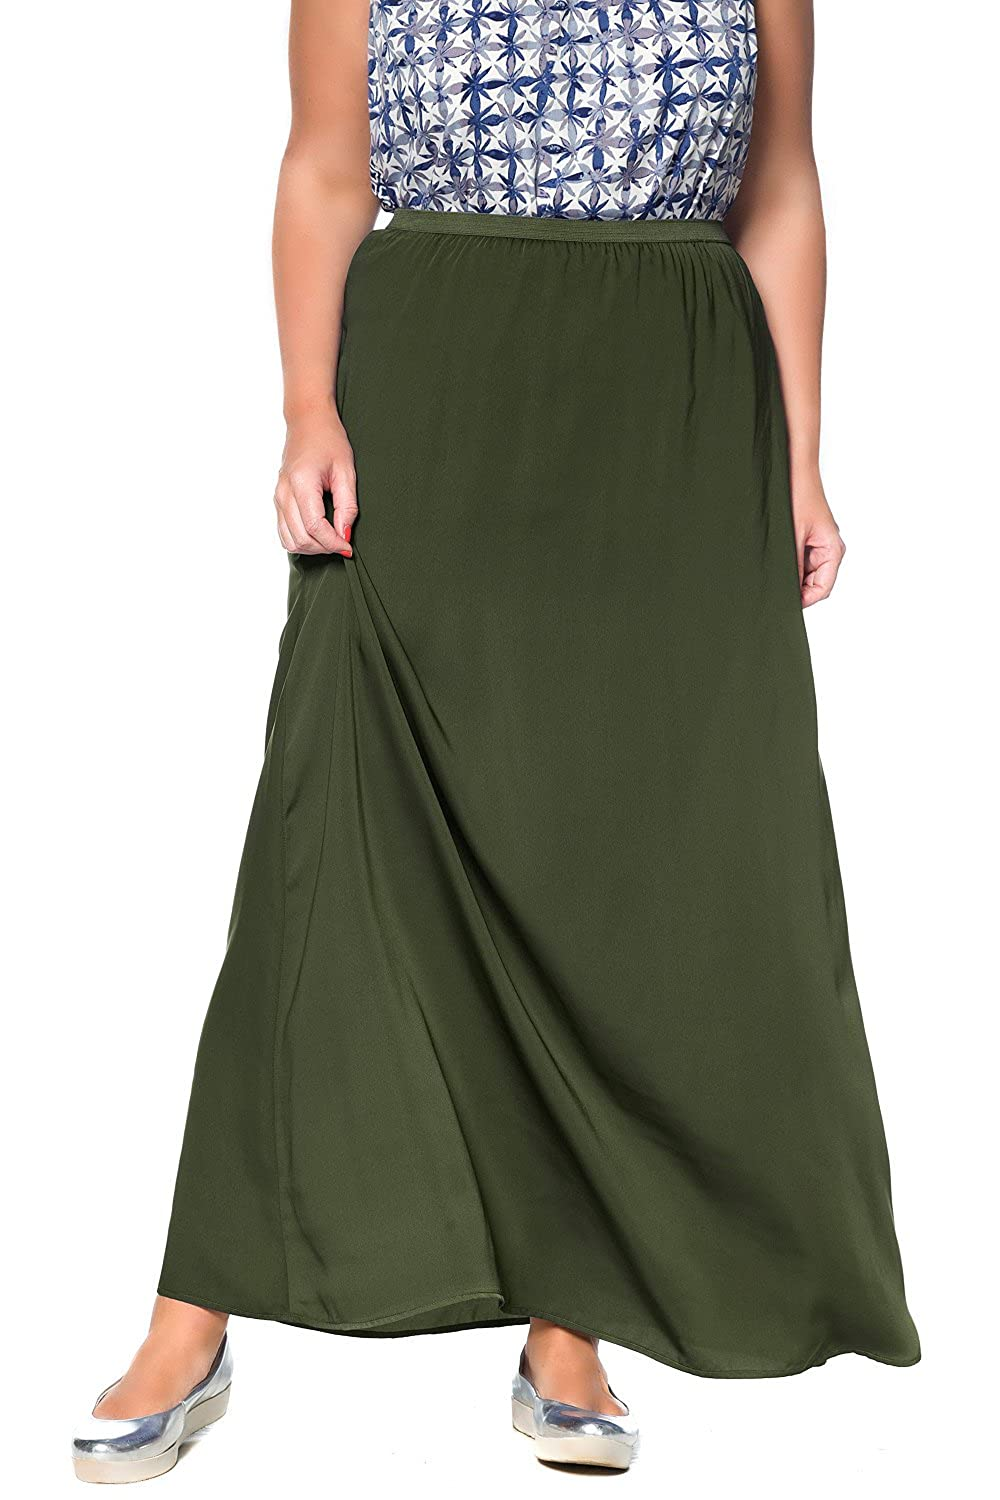 Studio Untold Women's Plus Size Maxi Skirt 704327